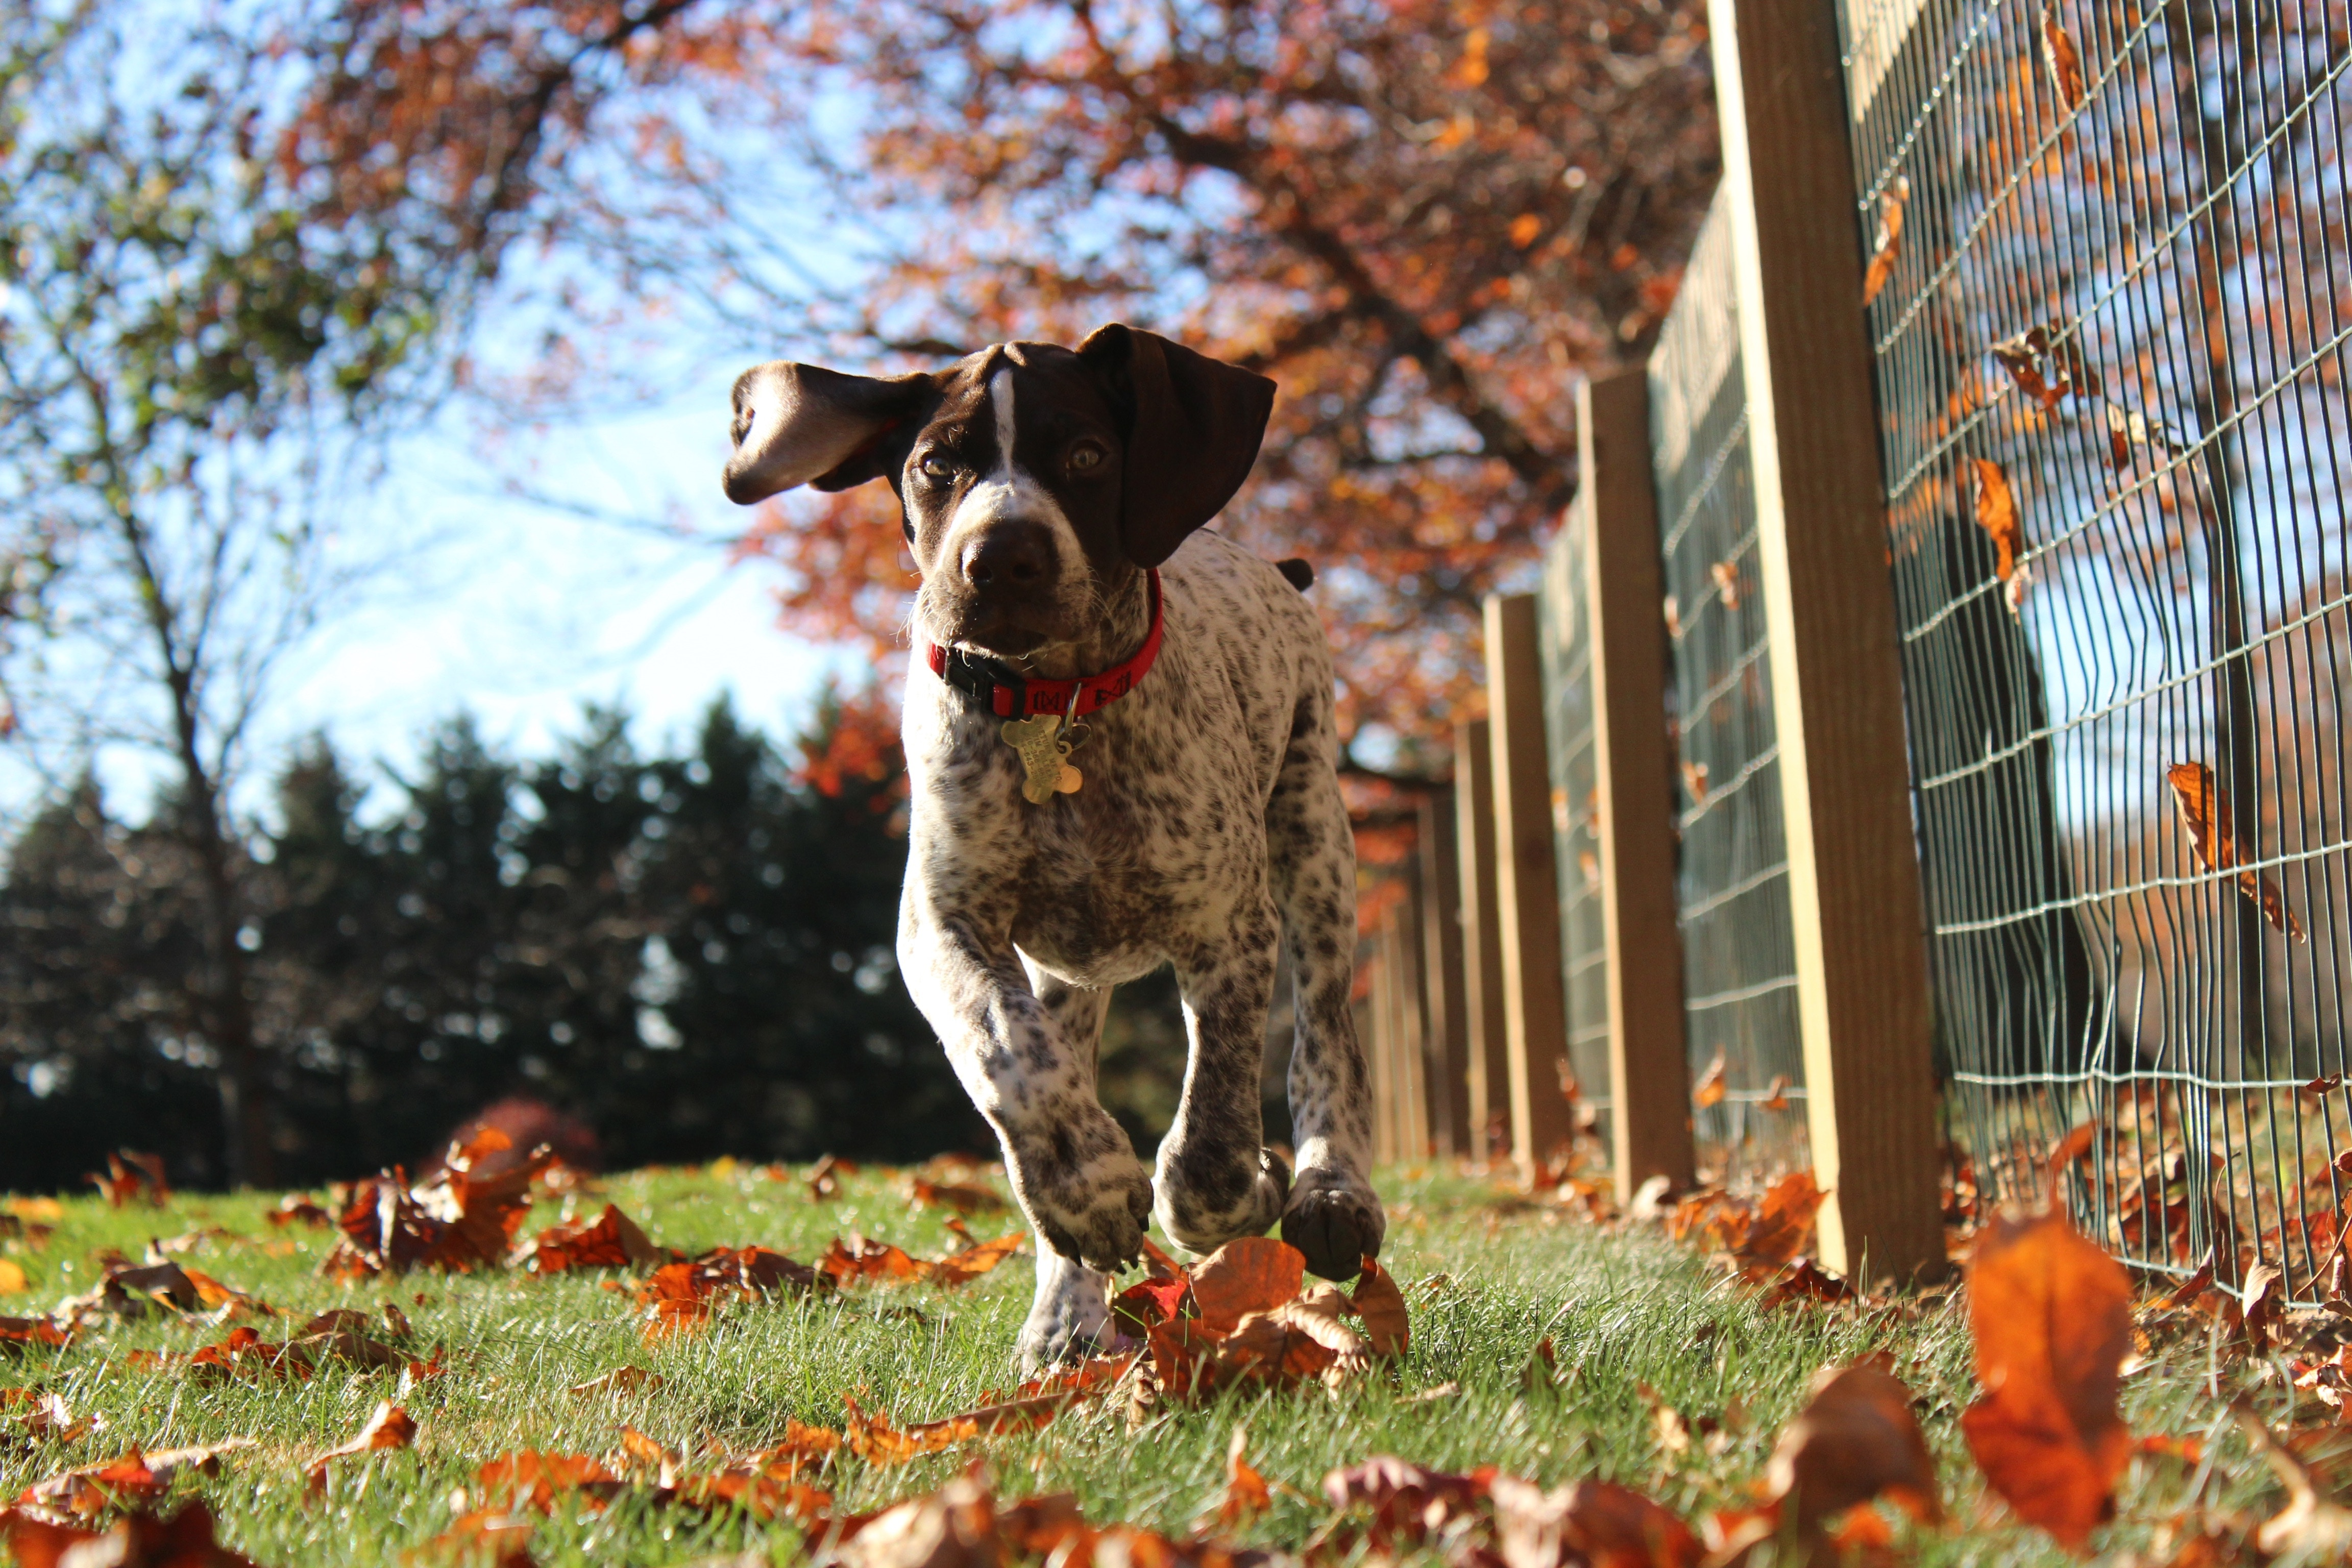 tim-golder-312316-unsplash-autum-pup.jpg